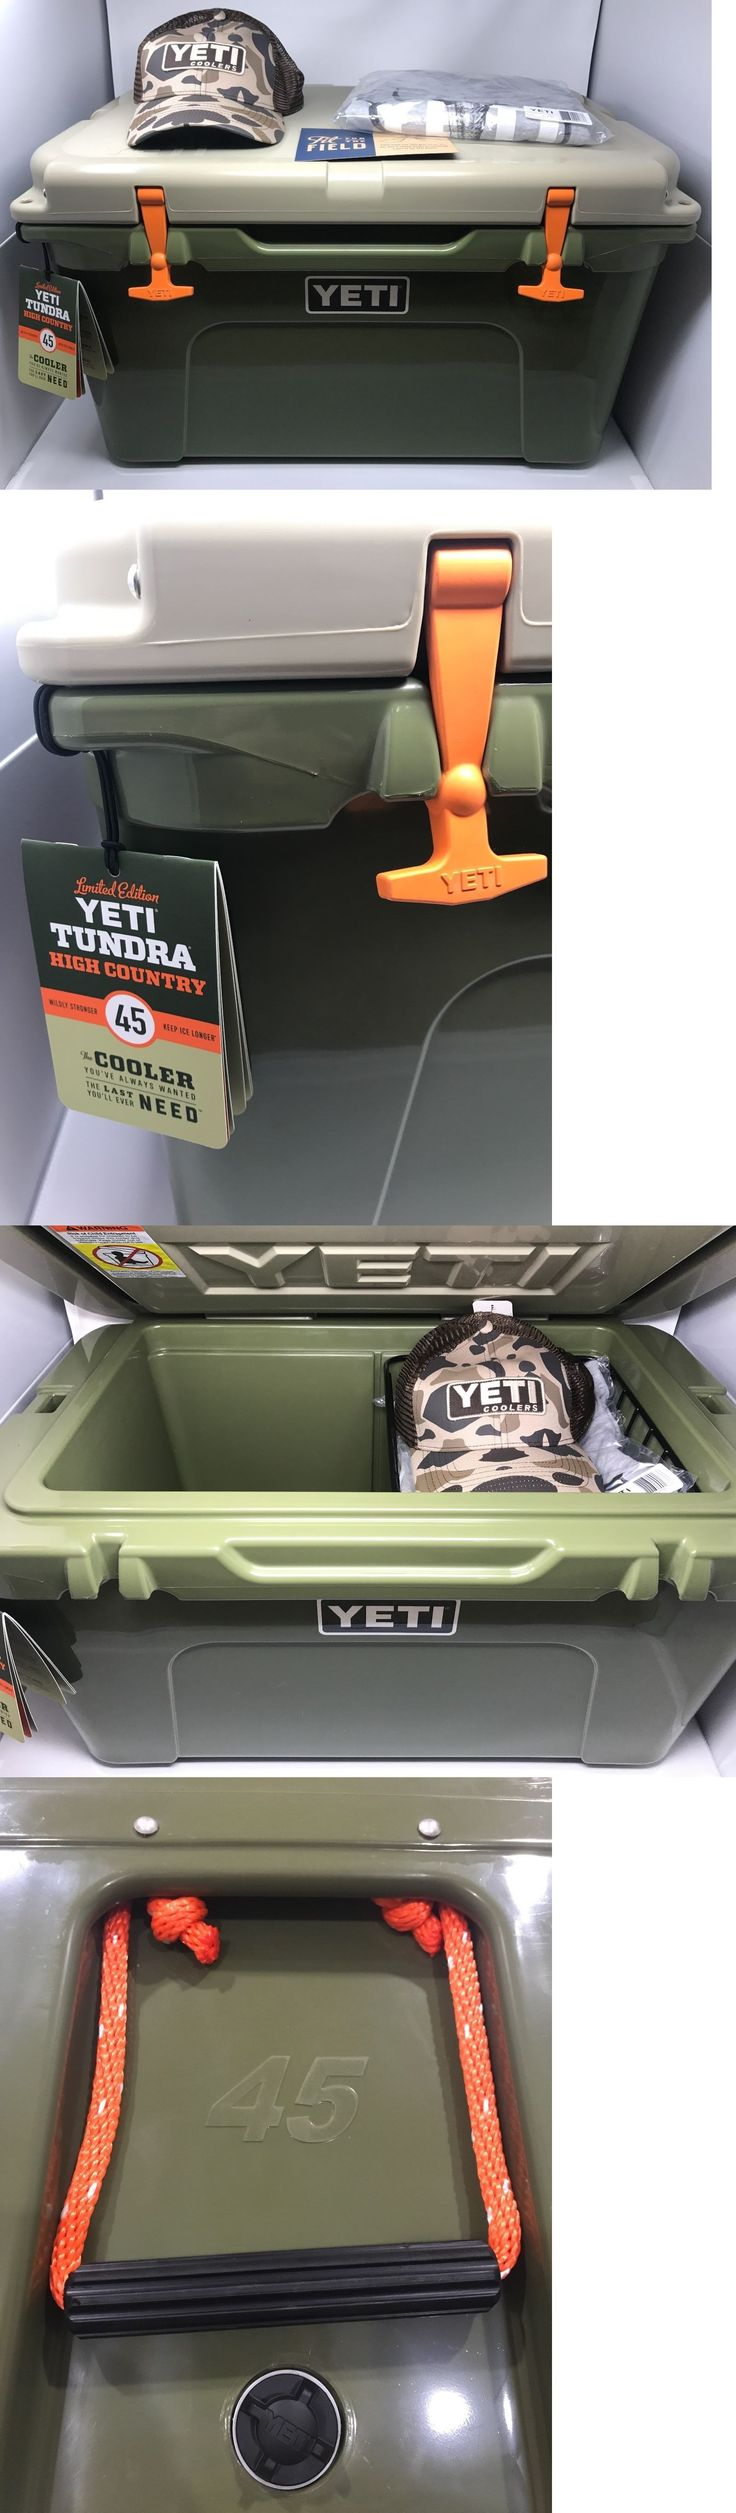 Camping Ice Boxes and Coolers 181382: New Yeti Tundra 45 Quart High Country Cooler, Shirt, Hat Rare Limited Edition -> BUY IT NOW ONLY: $499.99 on eBay!